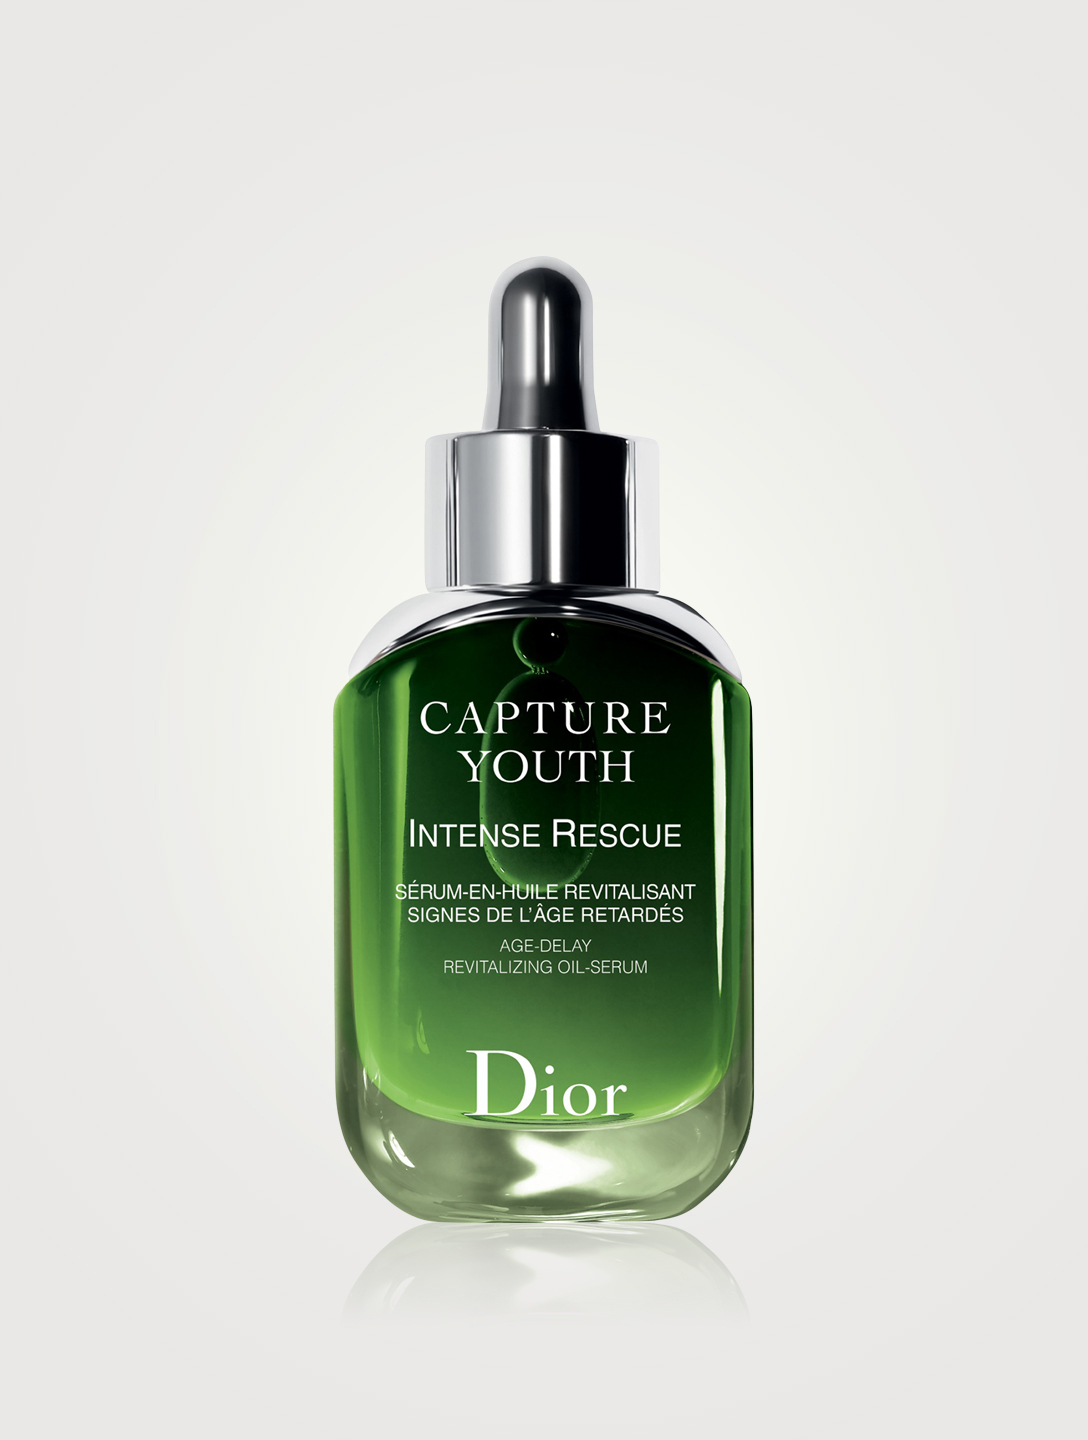 DIOR Sérum-en-huile revitalisant signes de l'âge retardés Intense Rescue Capture Youth Beauté